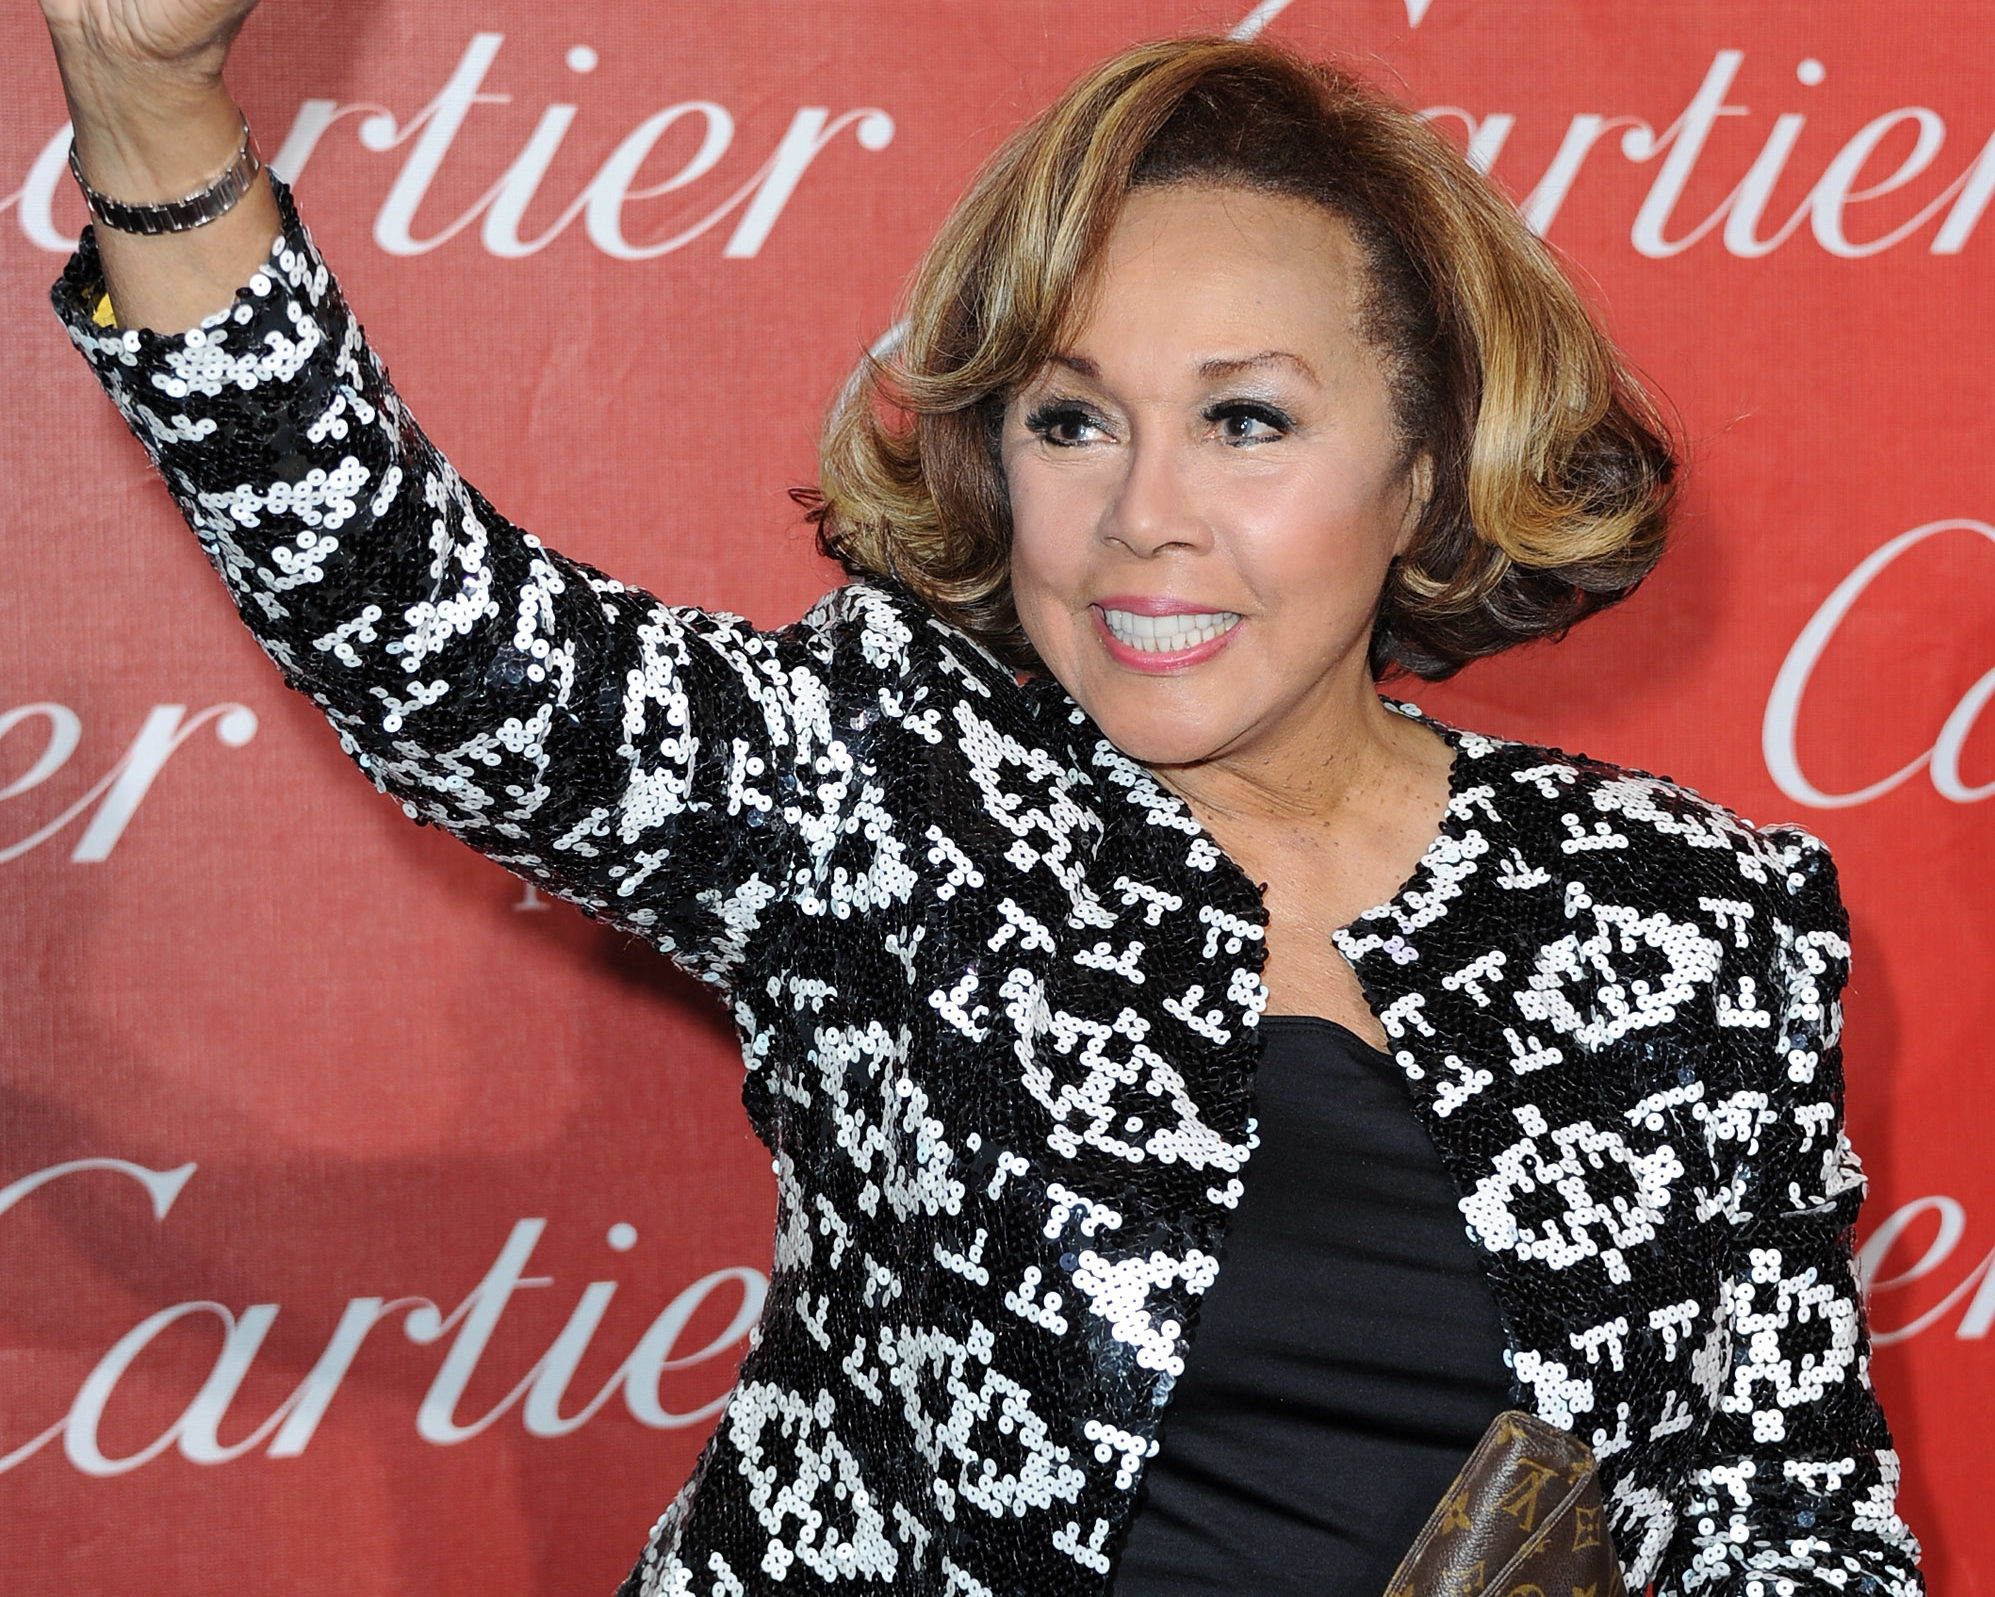 Legendary actress Diahann Carroll passed away today at the age of 84 after battling cancer. The trailblazer was the first Black woman to win a Tony.